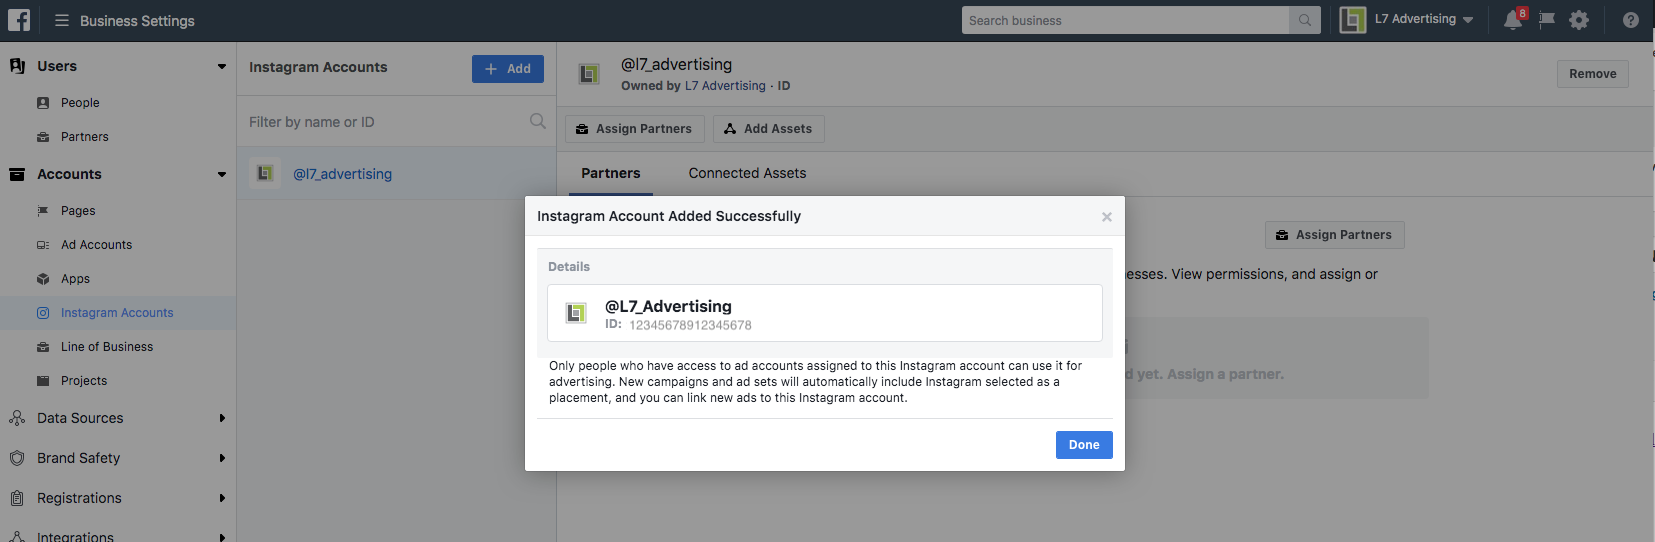 Assign an Instagram Account to an Facebook Ad Account Step 7 Screenshot